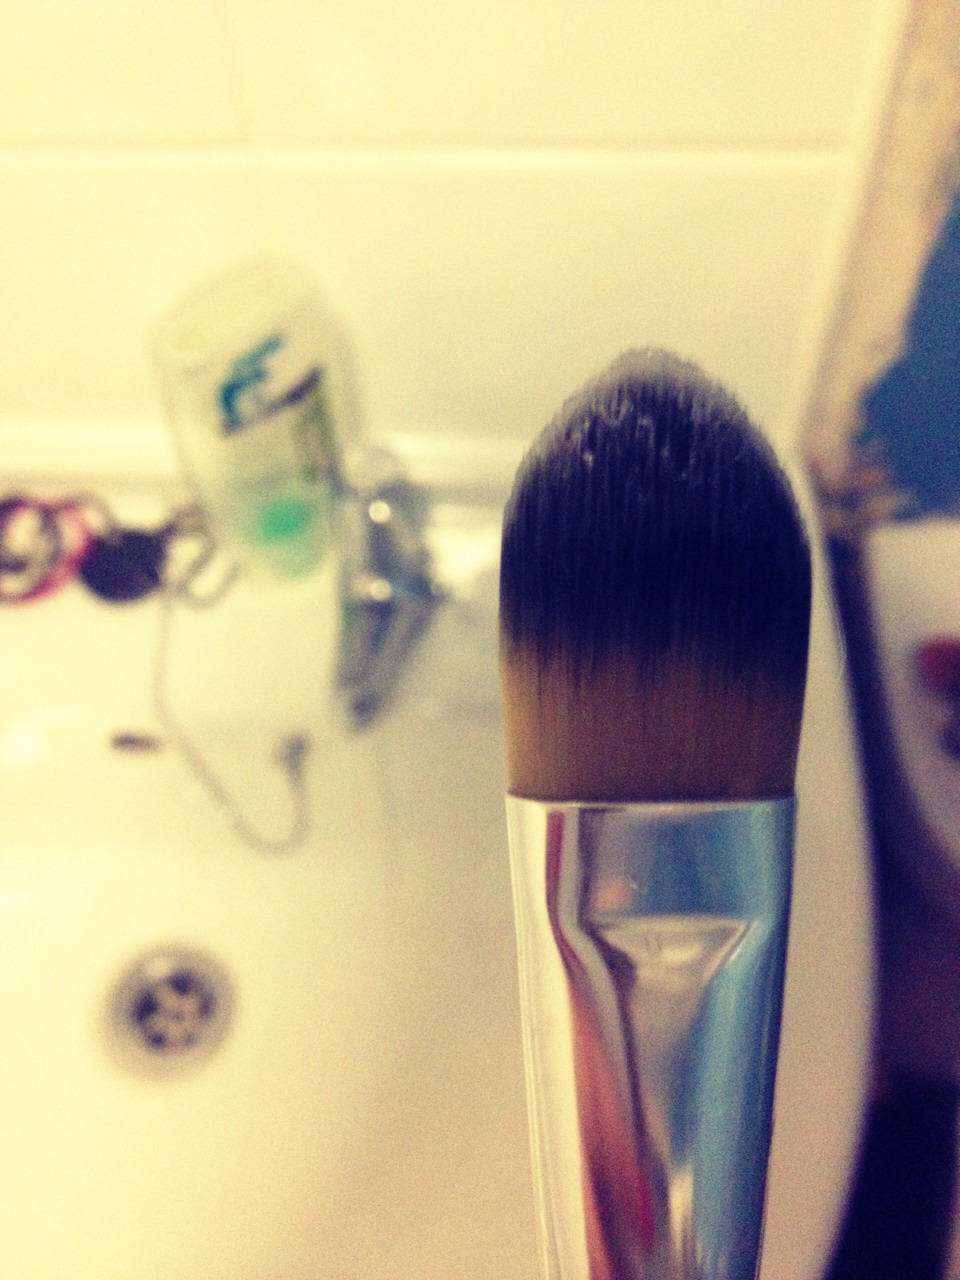 Best way to clean makeup brushes